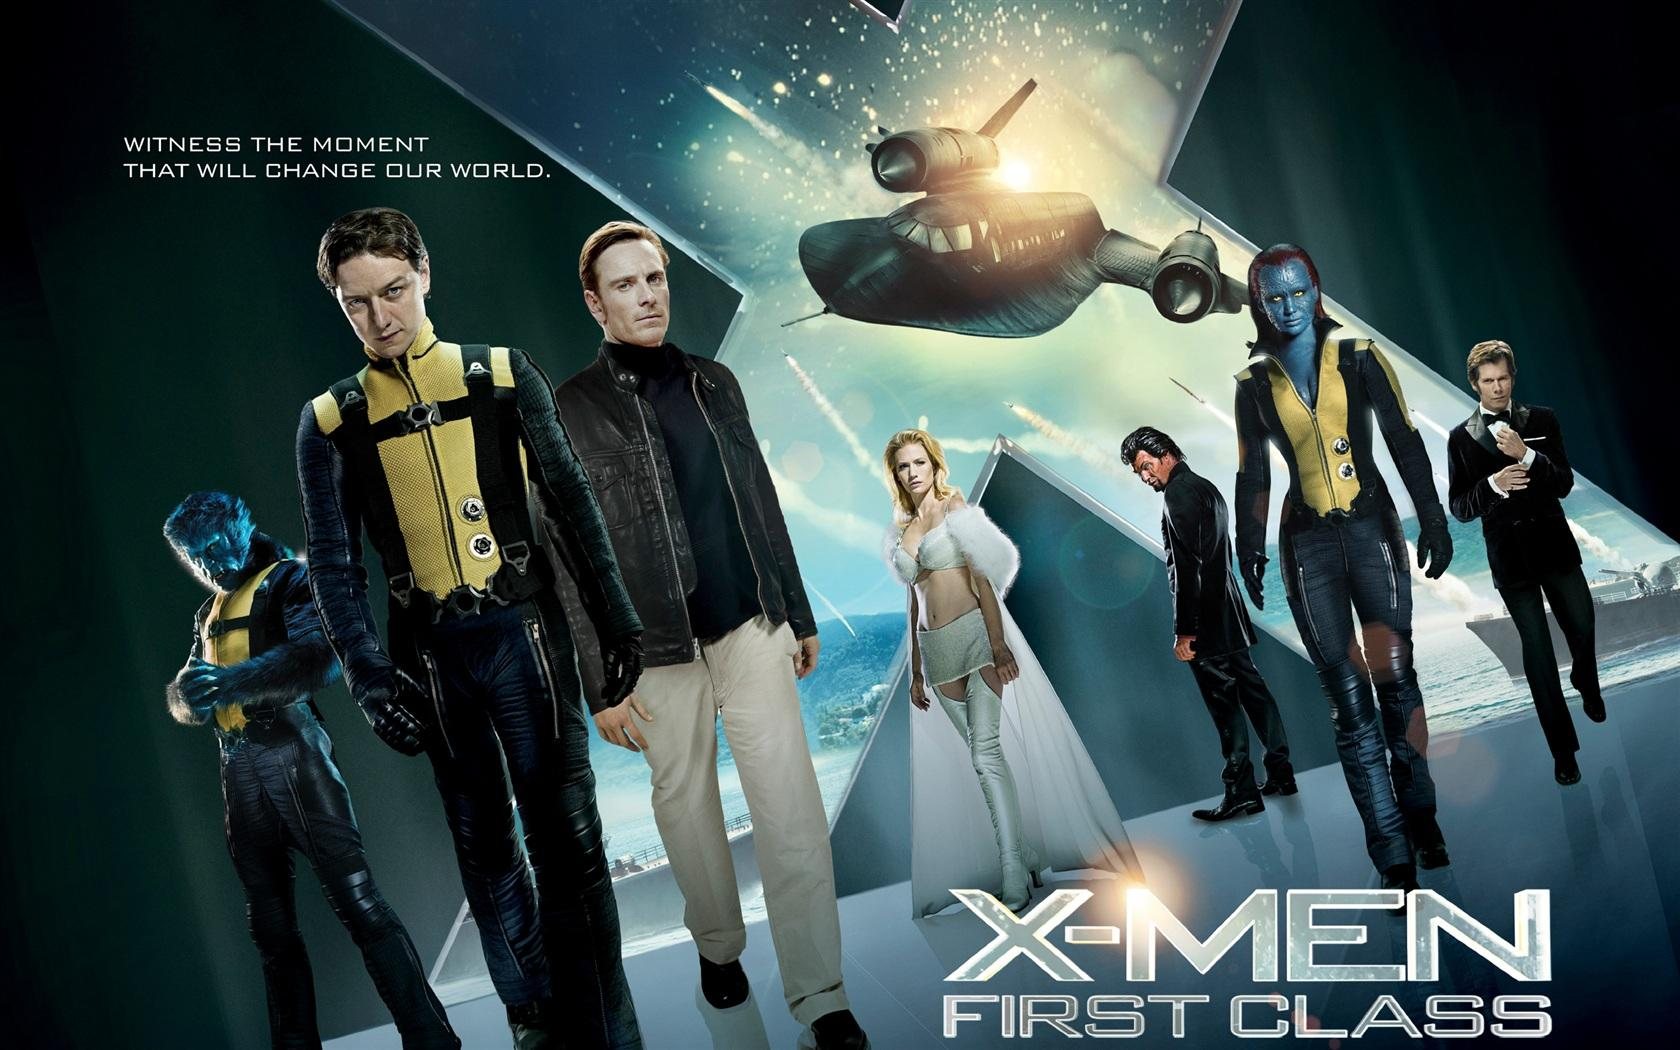 x-men first class essays Read this essay on x-men first class come browse our large digital warehouse of free sample essays get the knowledge you need in order to pass your classes and more.